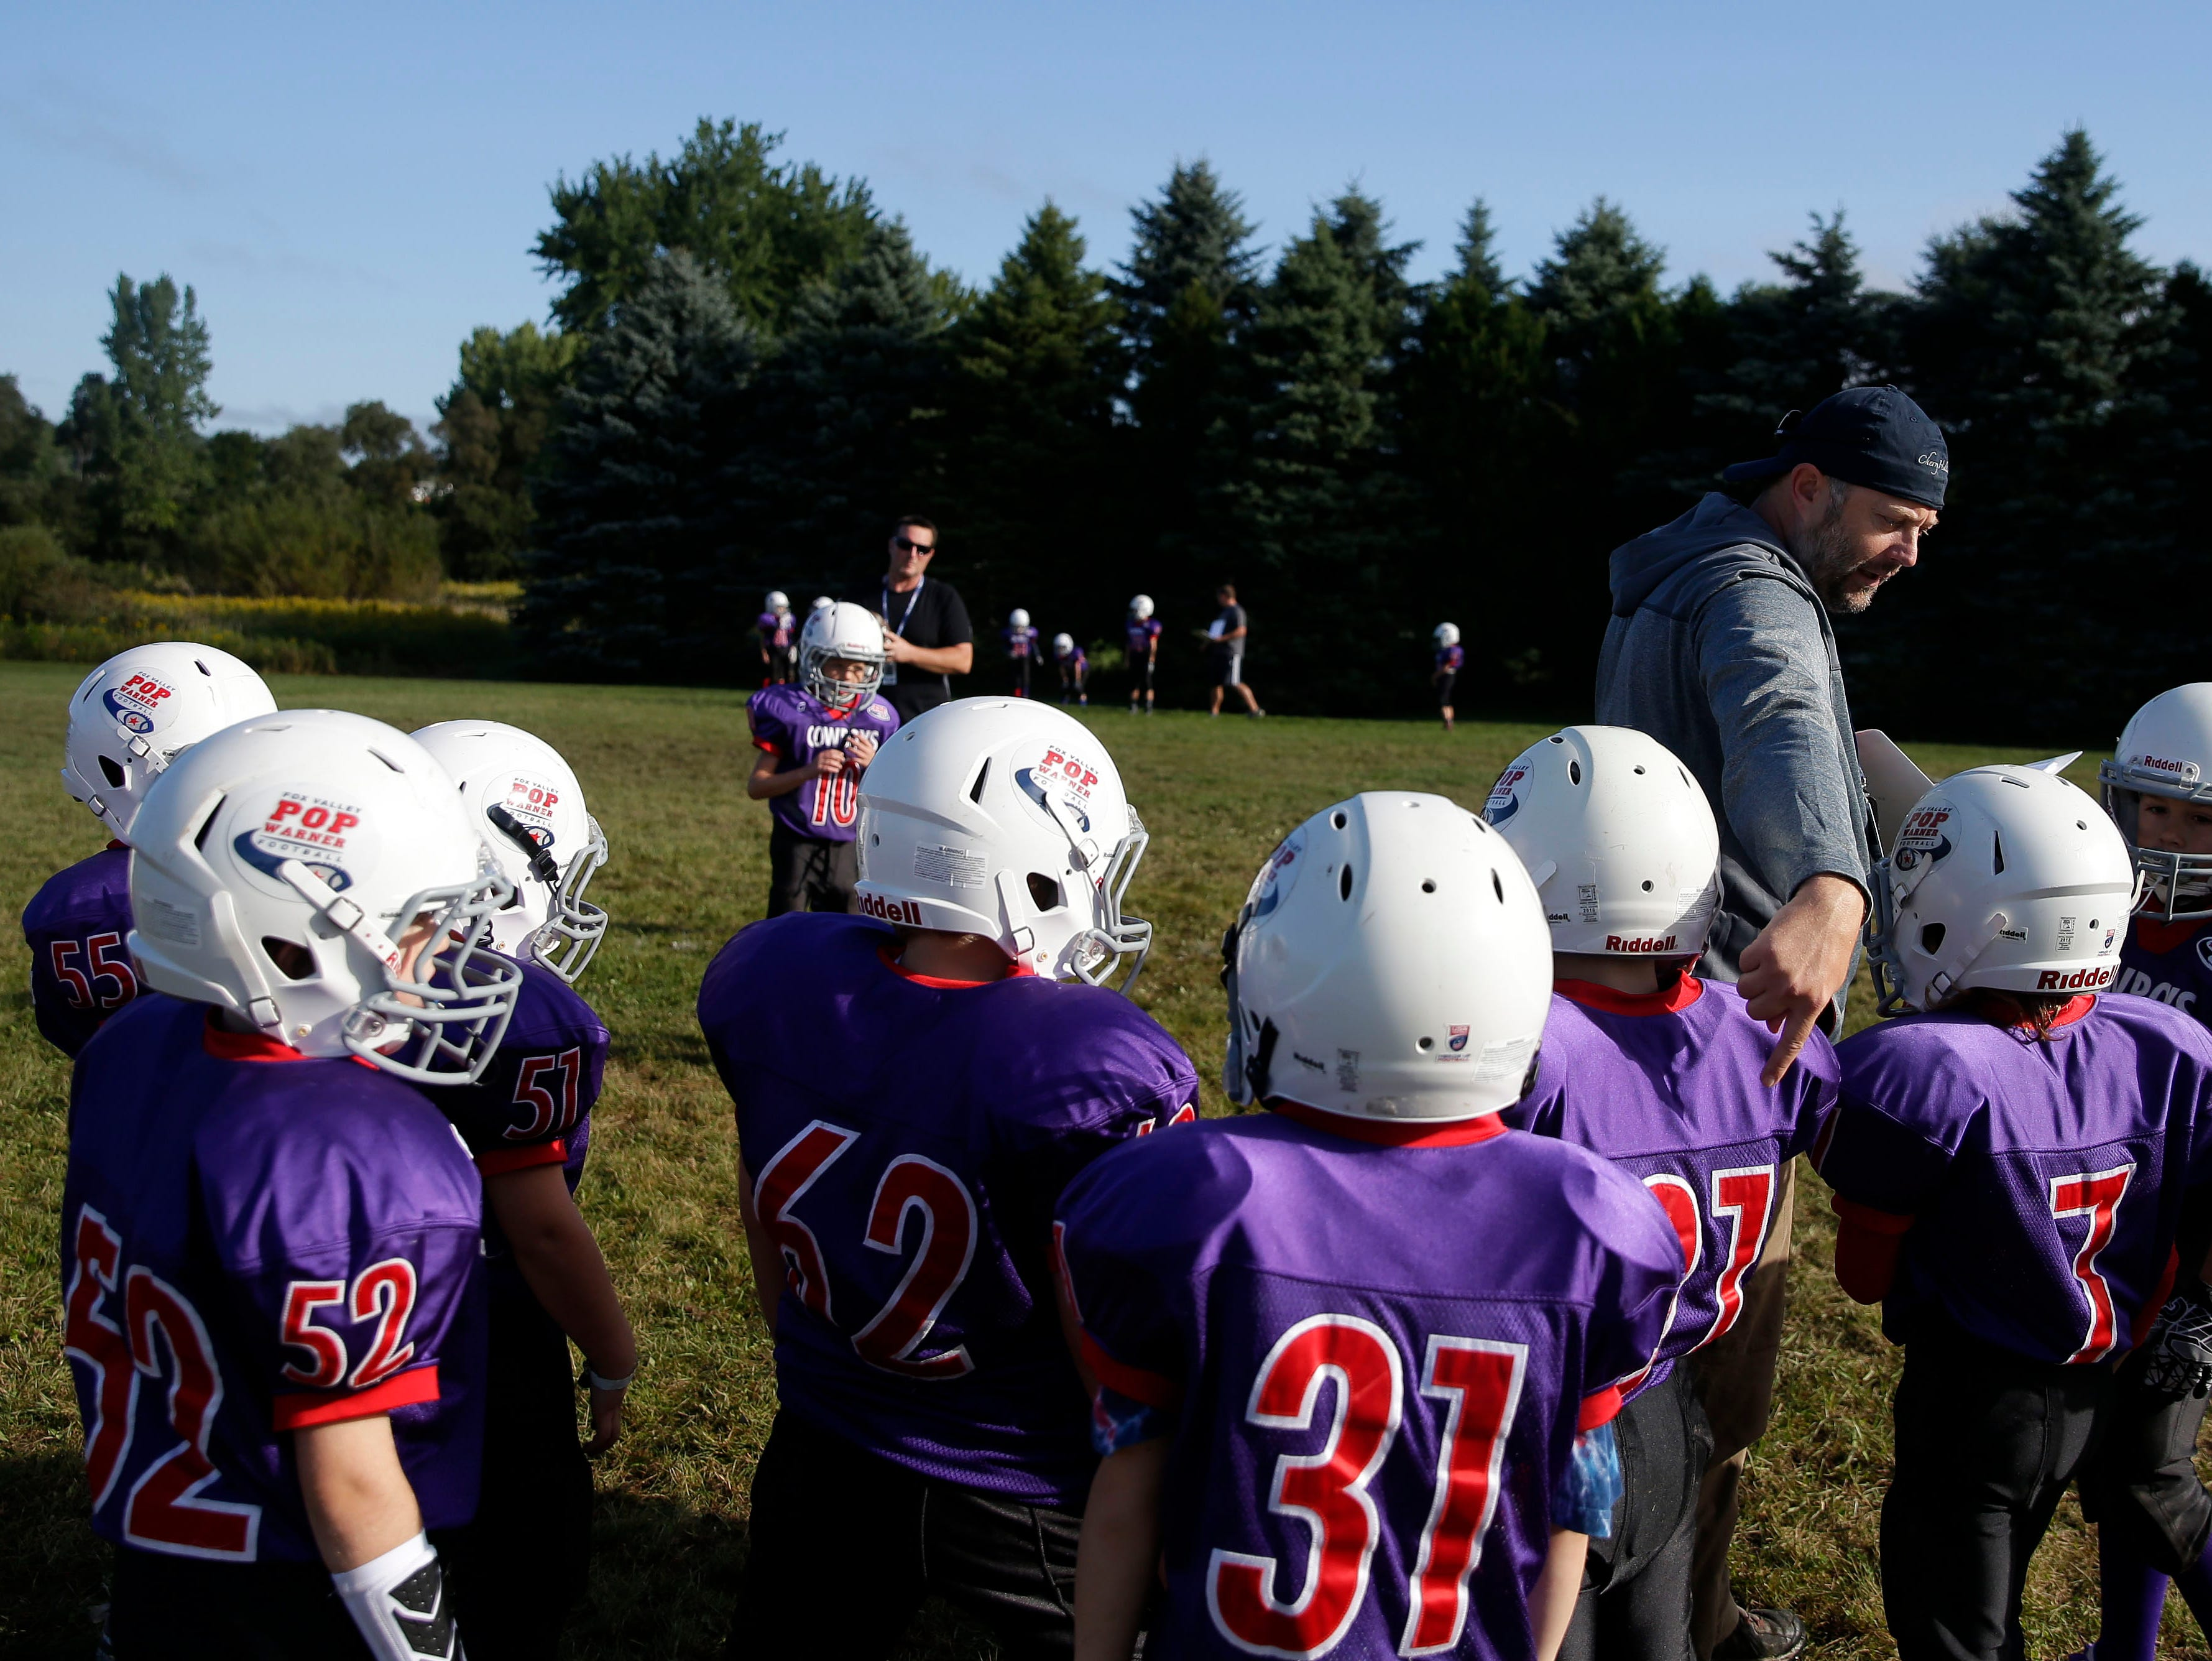 Coach Adam Landsverk of the Cowboys instructs players where to go in a huddle as Fox Valley Pop Warner Football opens the season Saturday, September 8, 2018, at Plamann Park in Grand Chute, Wis.